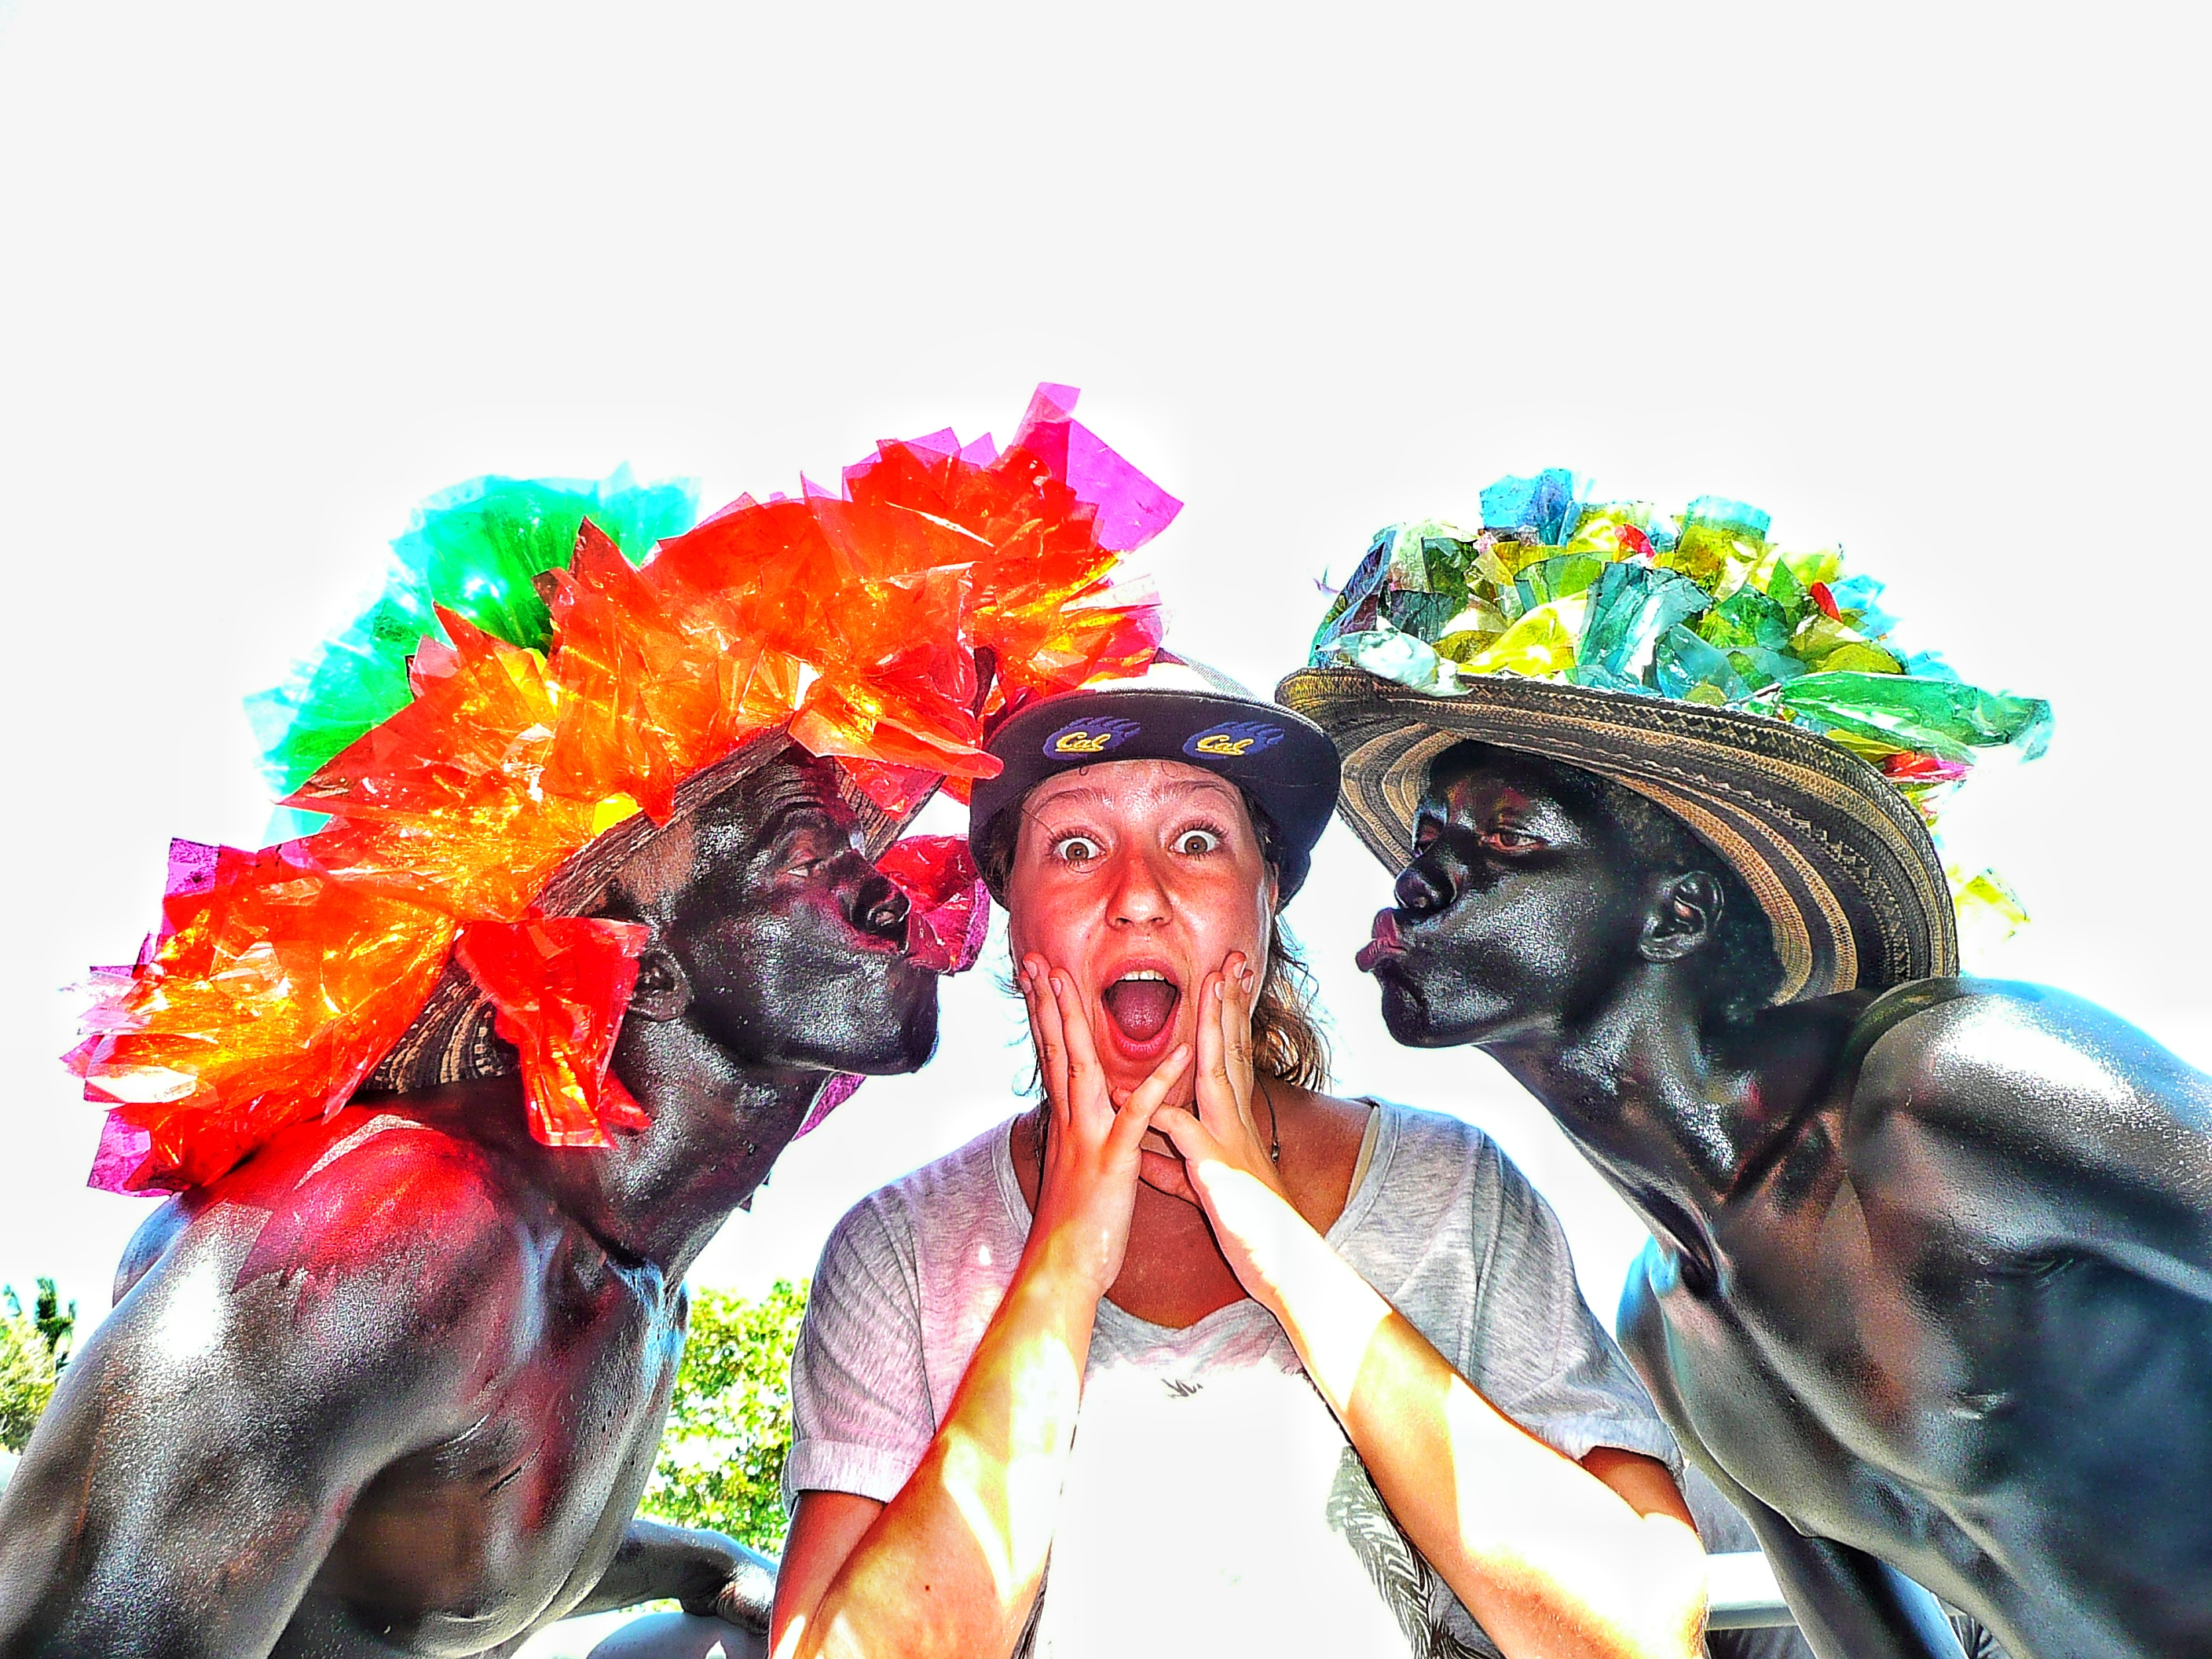 Colombia: I don't have a carnival costume yet!